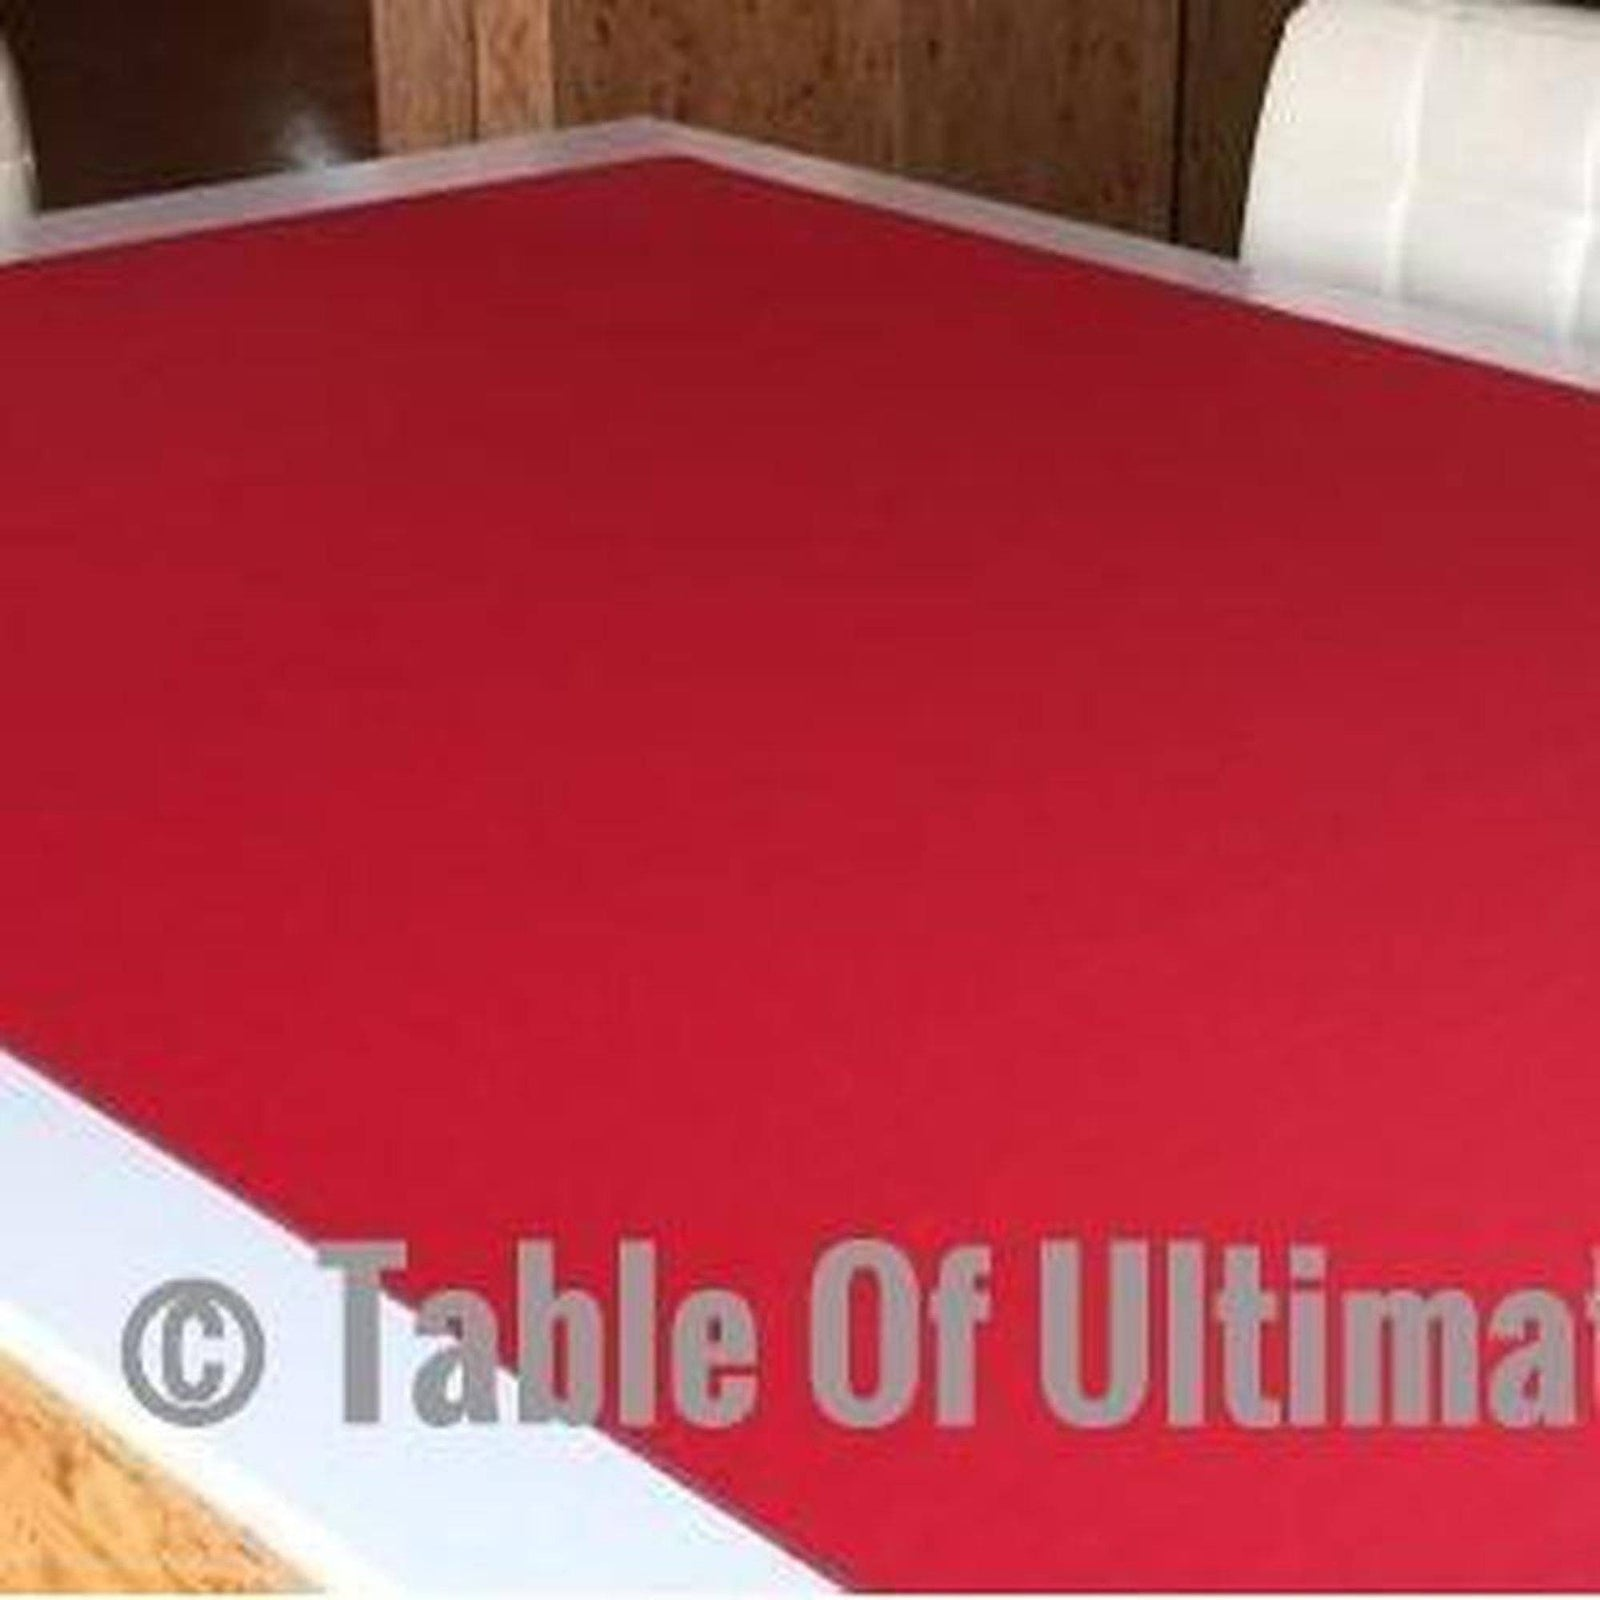 Table Mat - Elite Series - Table of Ultimate Gaming